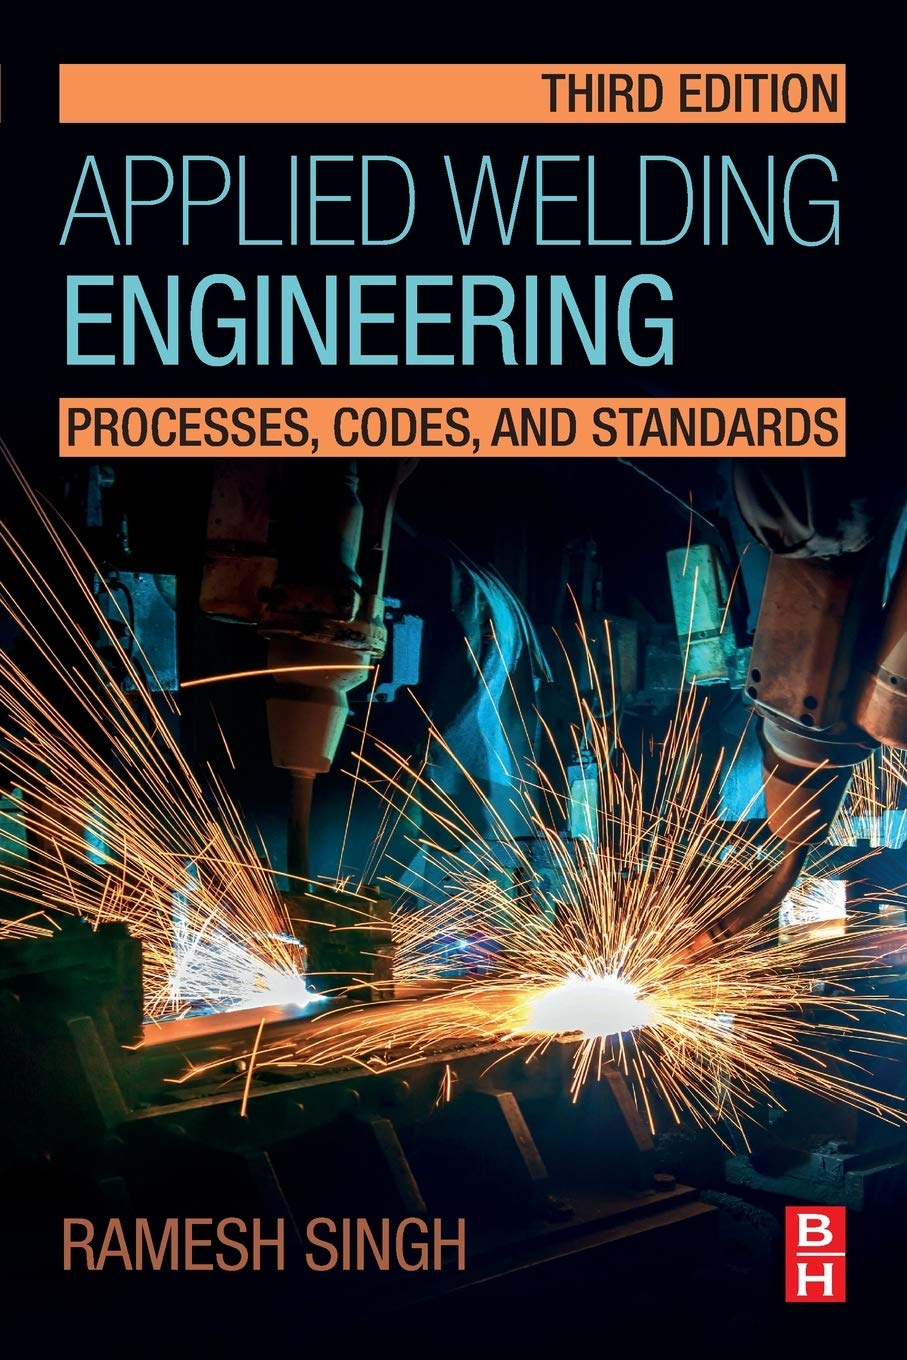 Applied Welding Engineering Processes Codes And Standards Amazon Co Uk Singh Ramesh 9780128213483 Books